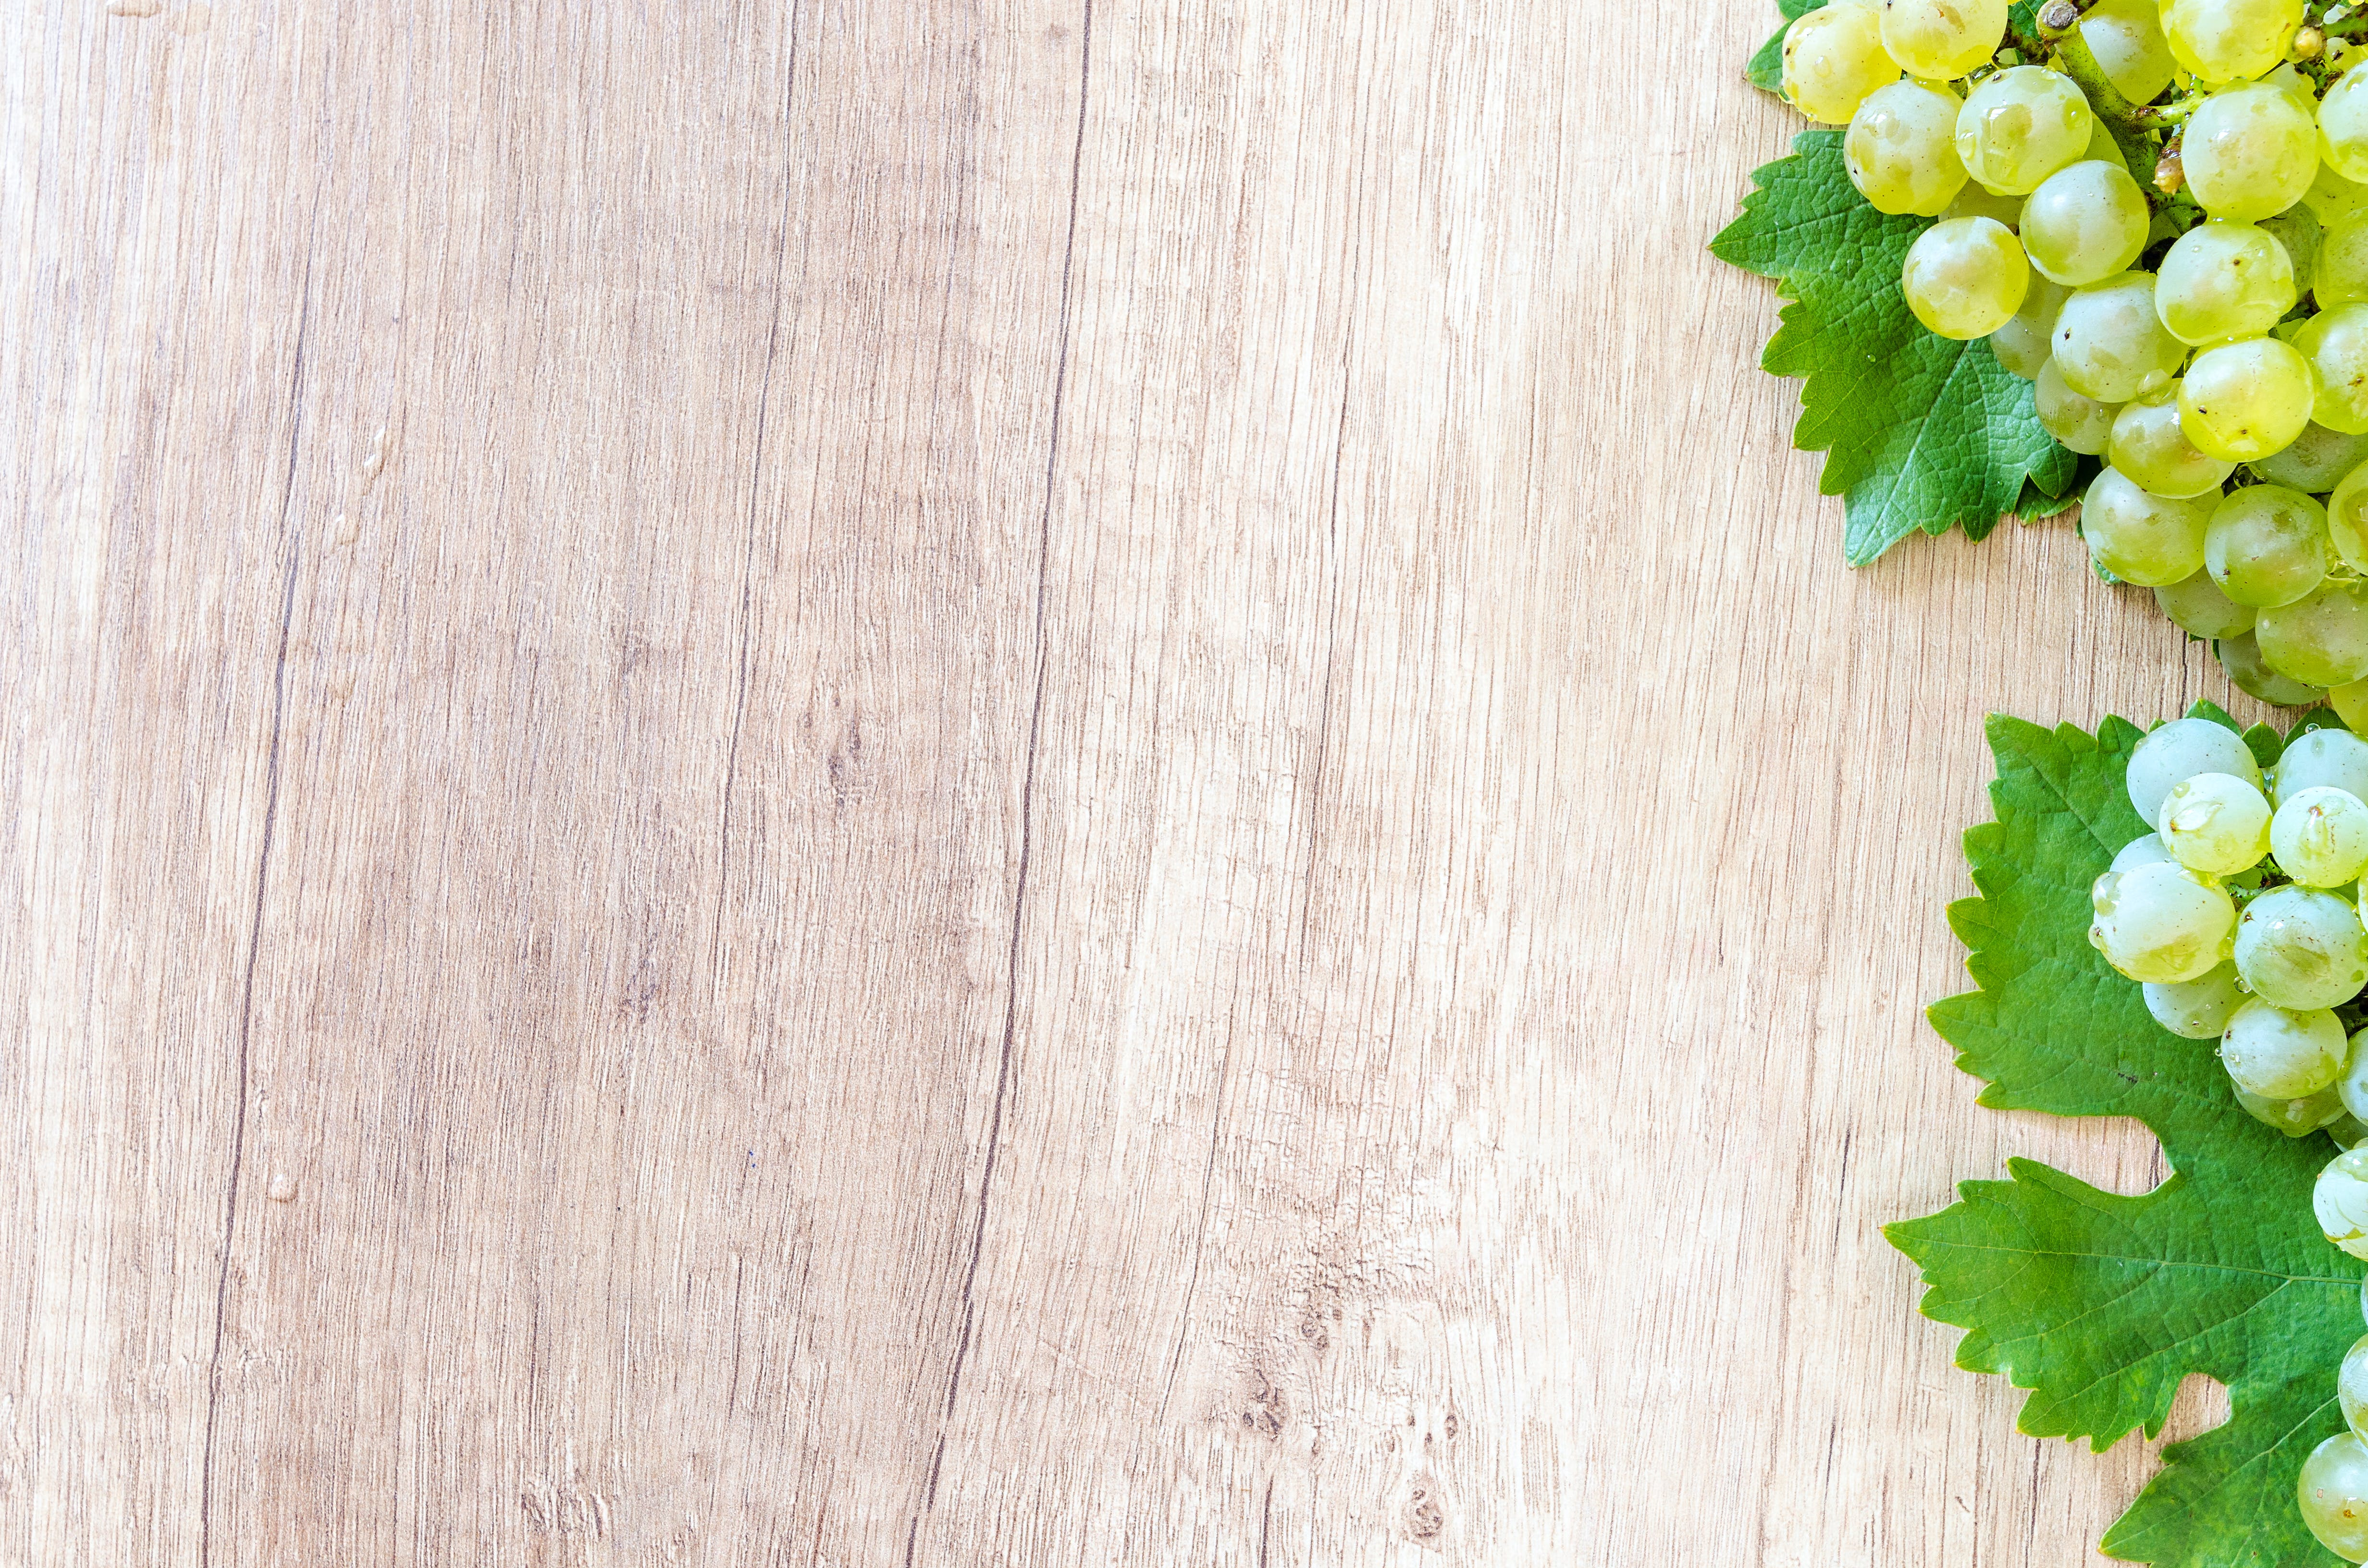 Green Grapes on Brown Wooden Panel